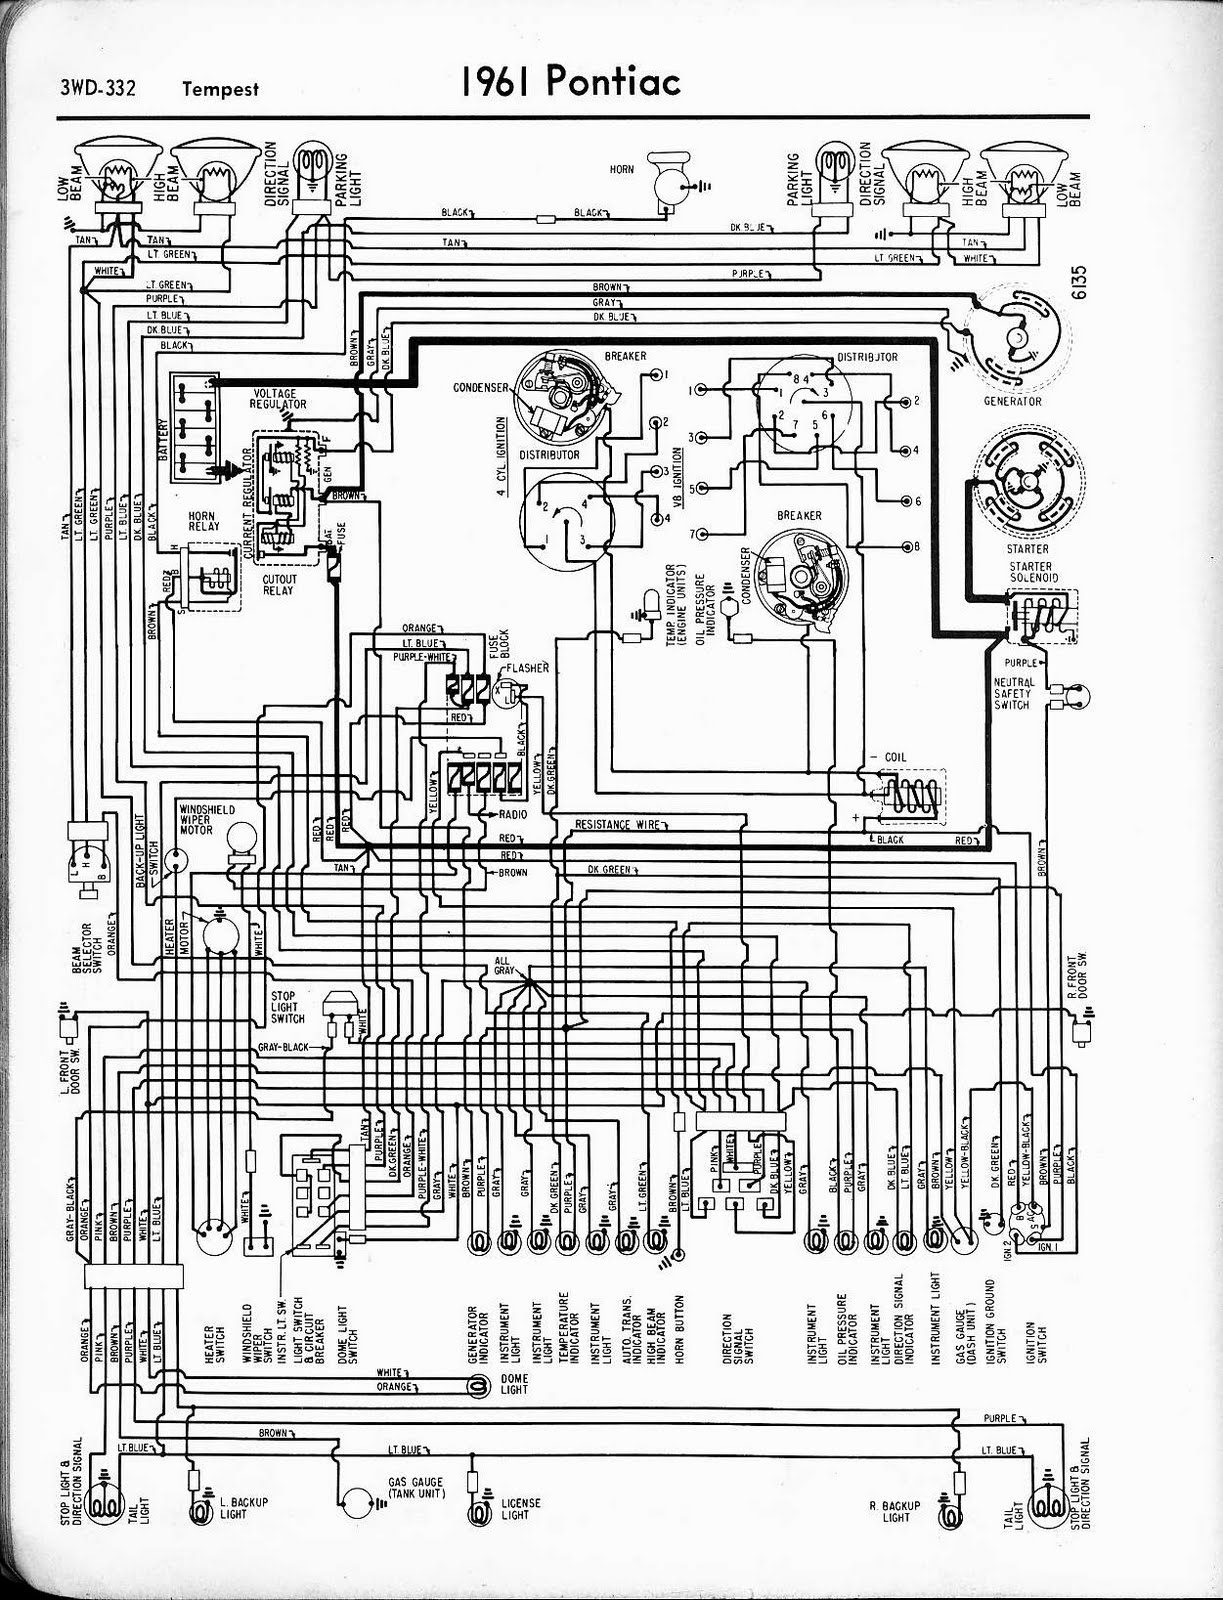 DIAGRAM] 1967 Pontiac Wiring Diagram FULL Version HD Quality Wiring Diagram  - REACTIONTRADING.MAI-LIE.FR